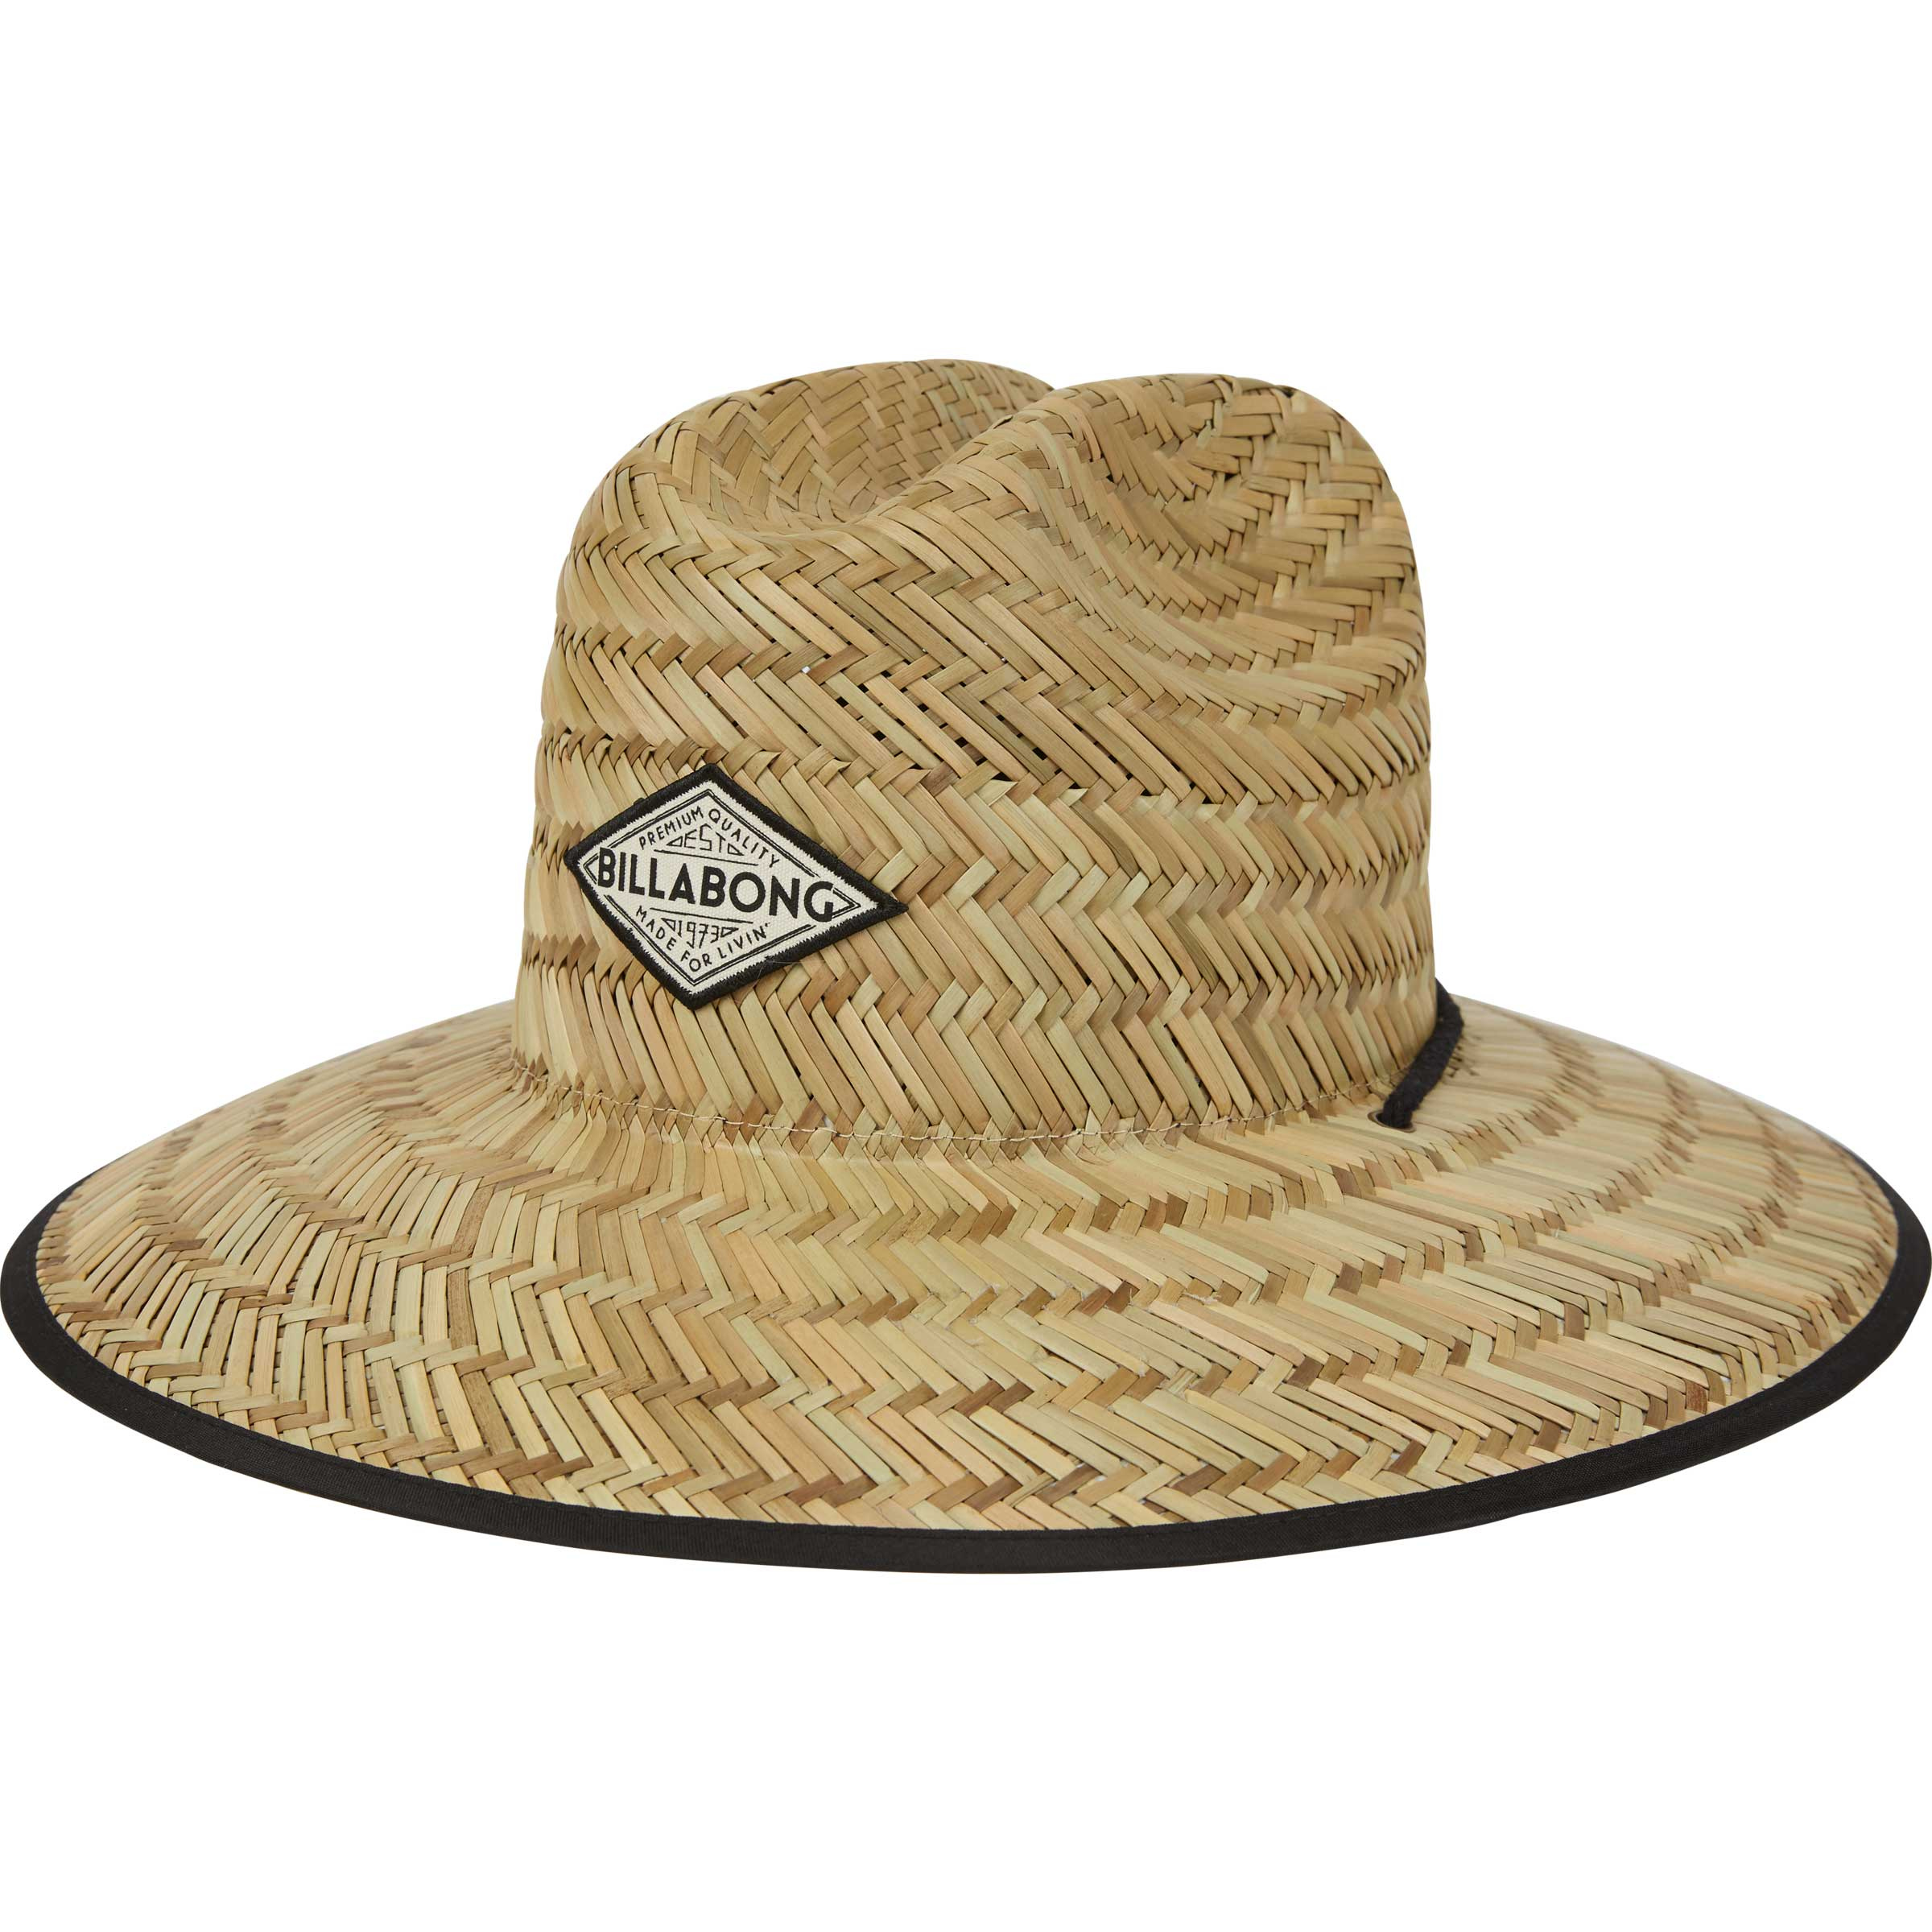 Billabong Tipton Sun Hat Womens Campsaver